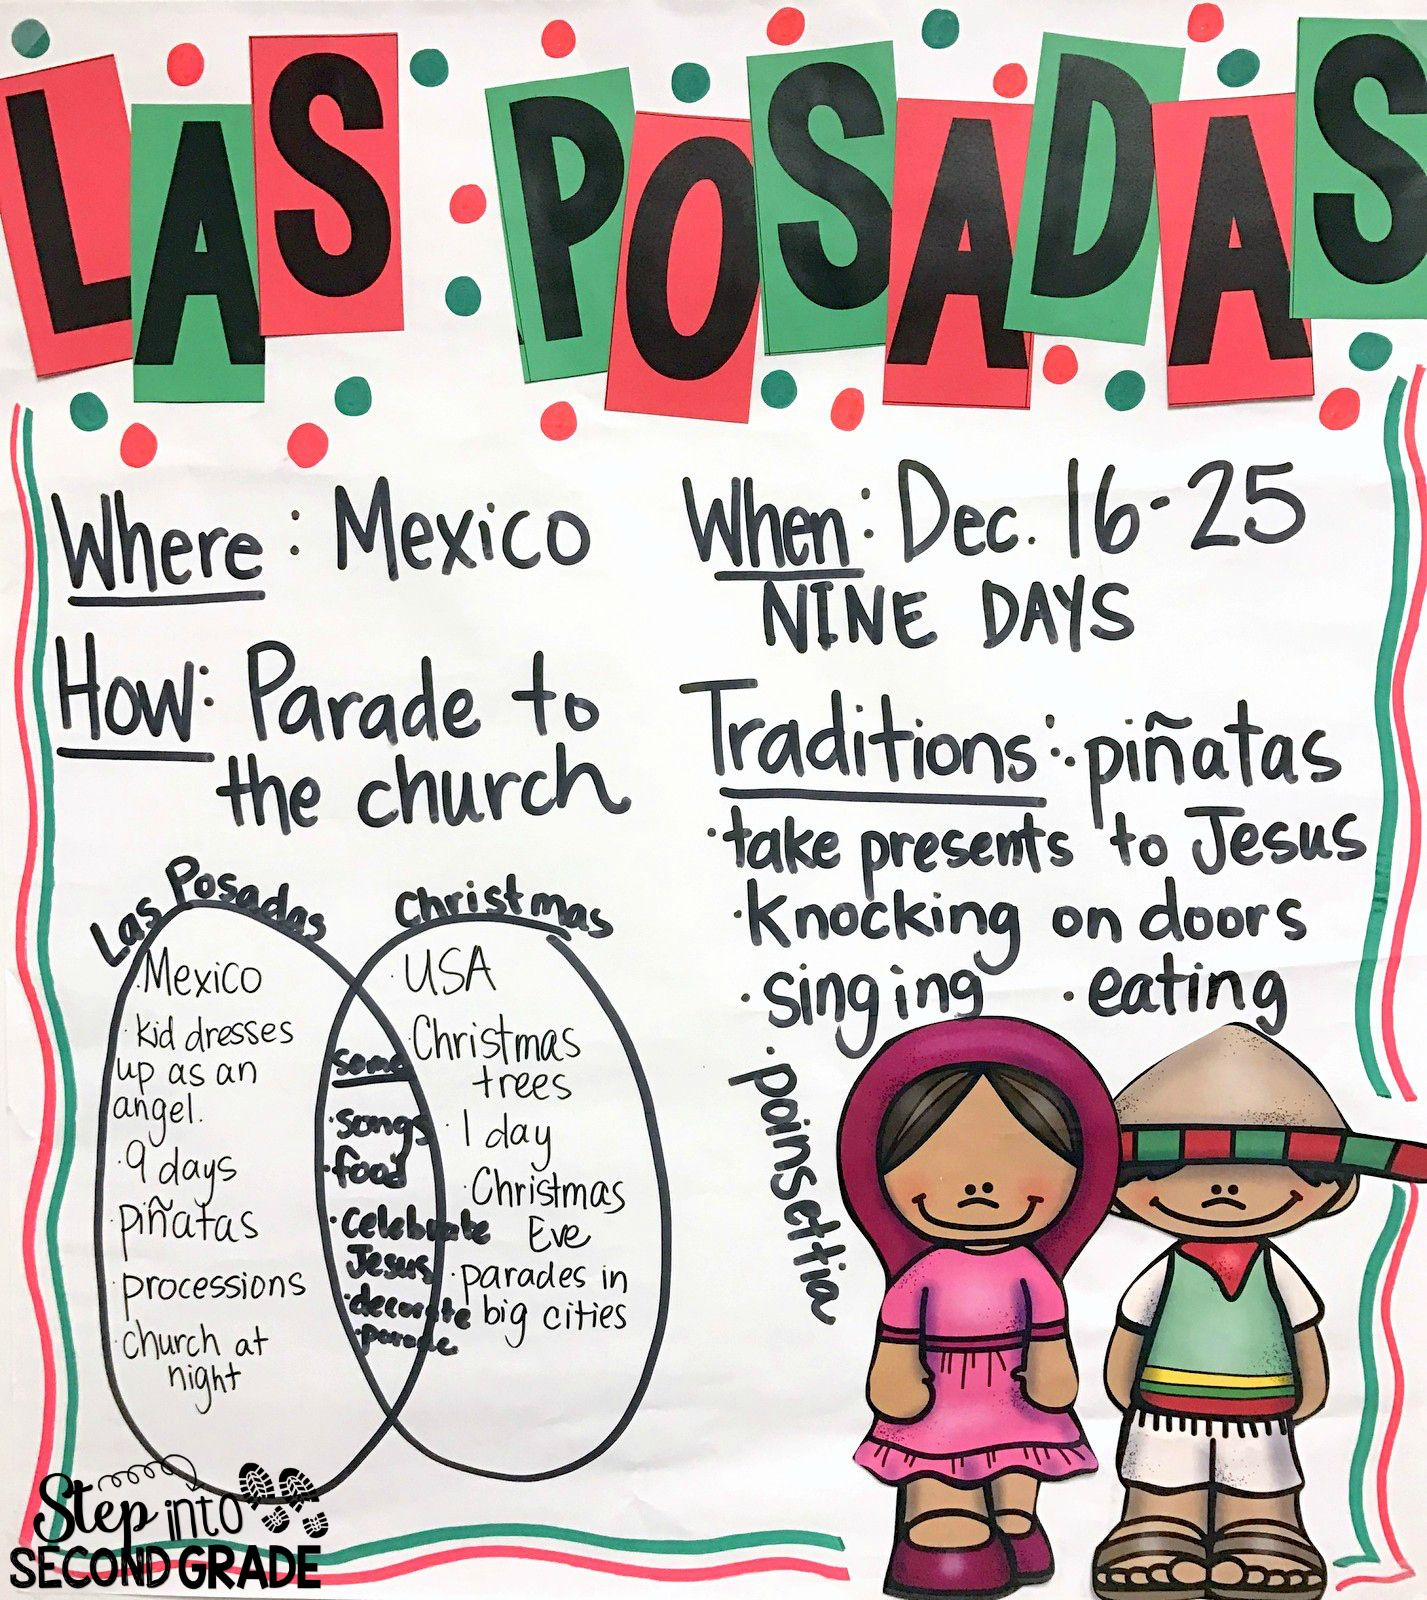 This week the 2nd graders have been reading The Legend of the Poinsettia. Today, we spent some time focusing on Las Posadas since that i...